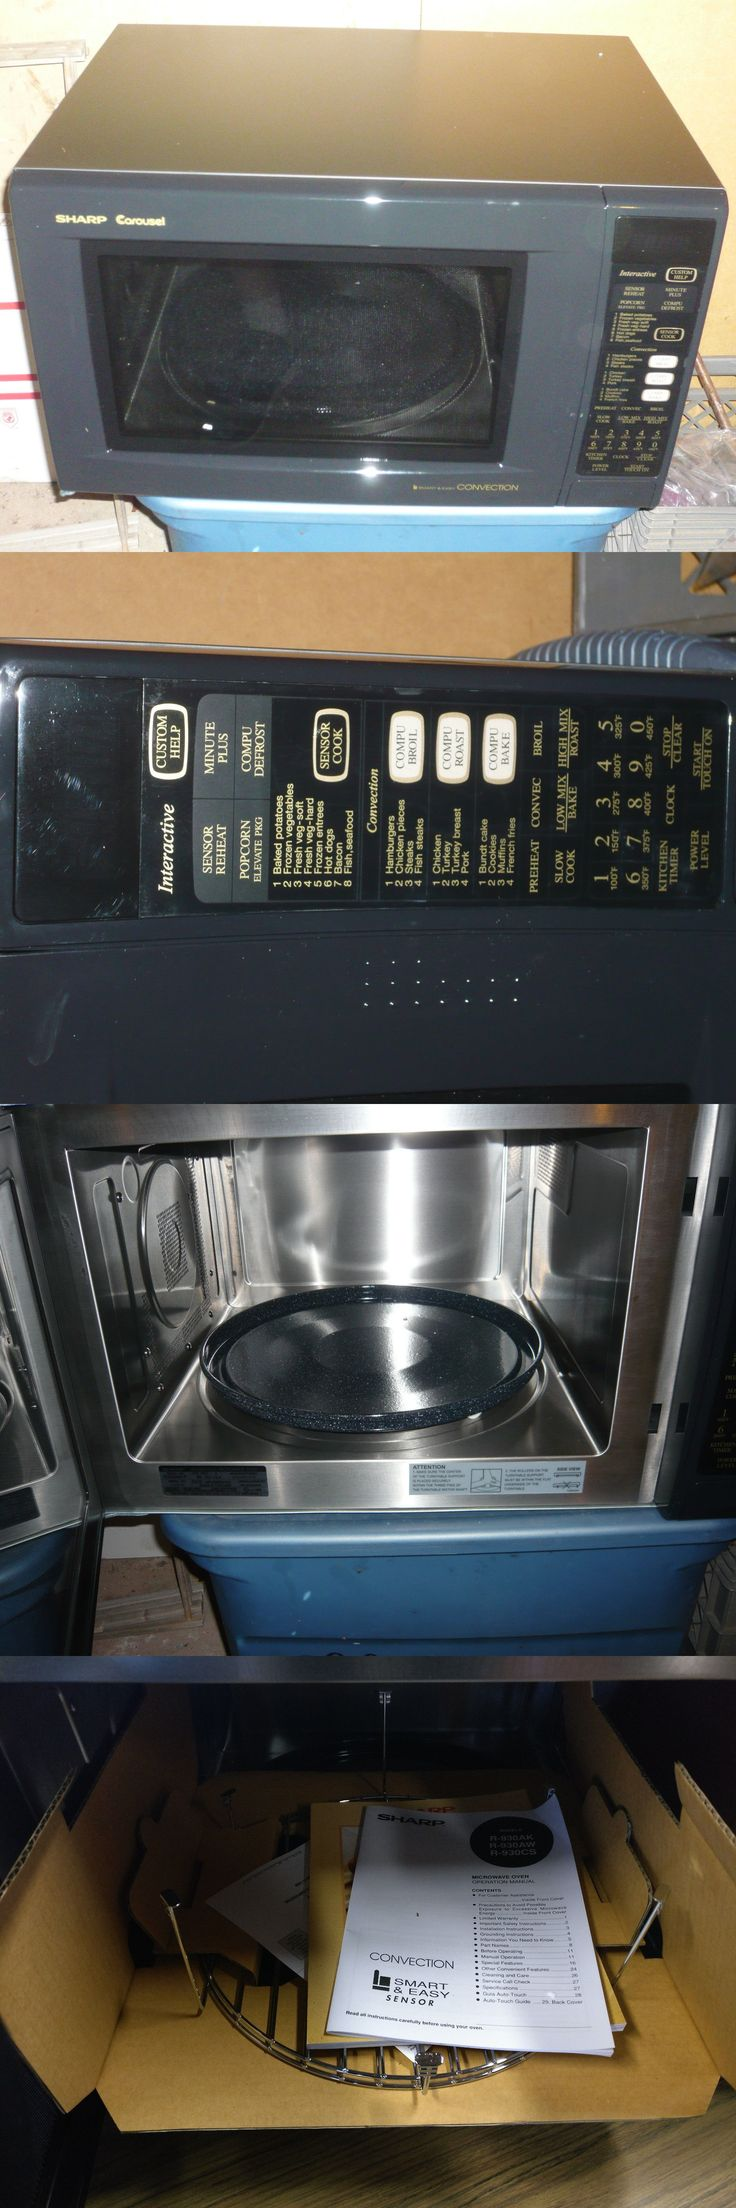 Microwave Ovens 150138: Sharp 1.5 Cu. Ft. 900W Convection Microwave In Black, R930ak -> BUY IT NOW ONLY: $275 on eBay!